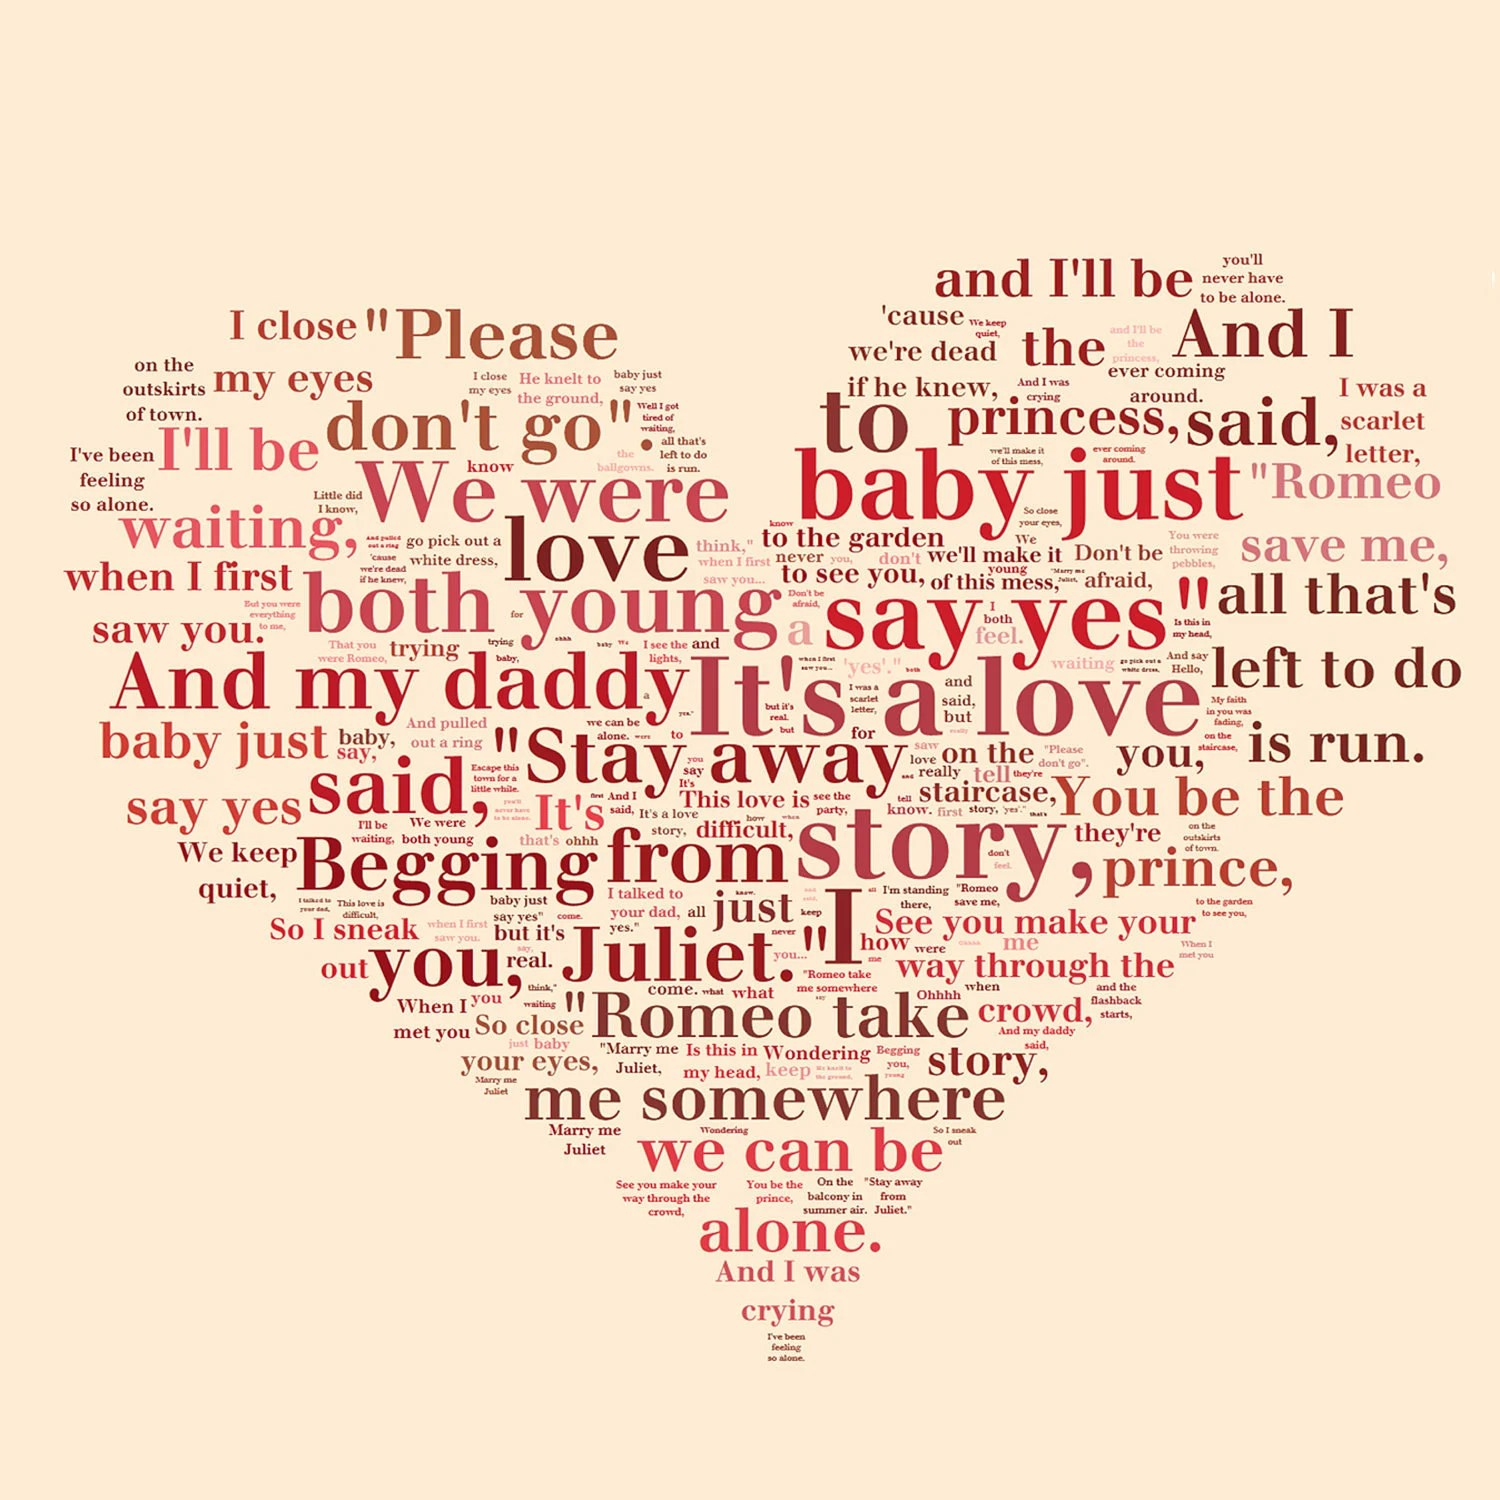 Heart Shaped Words Or Other Shapes Word Art Lyrics Collage On